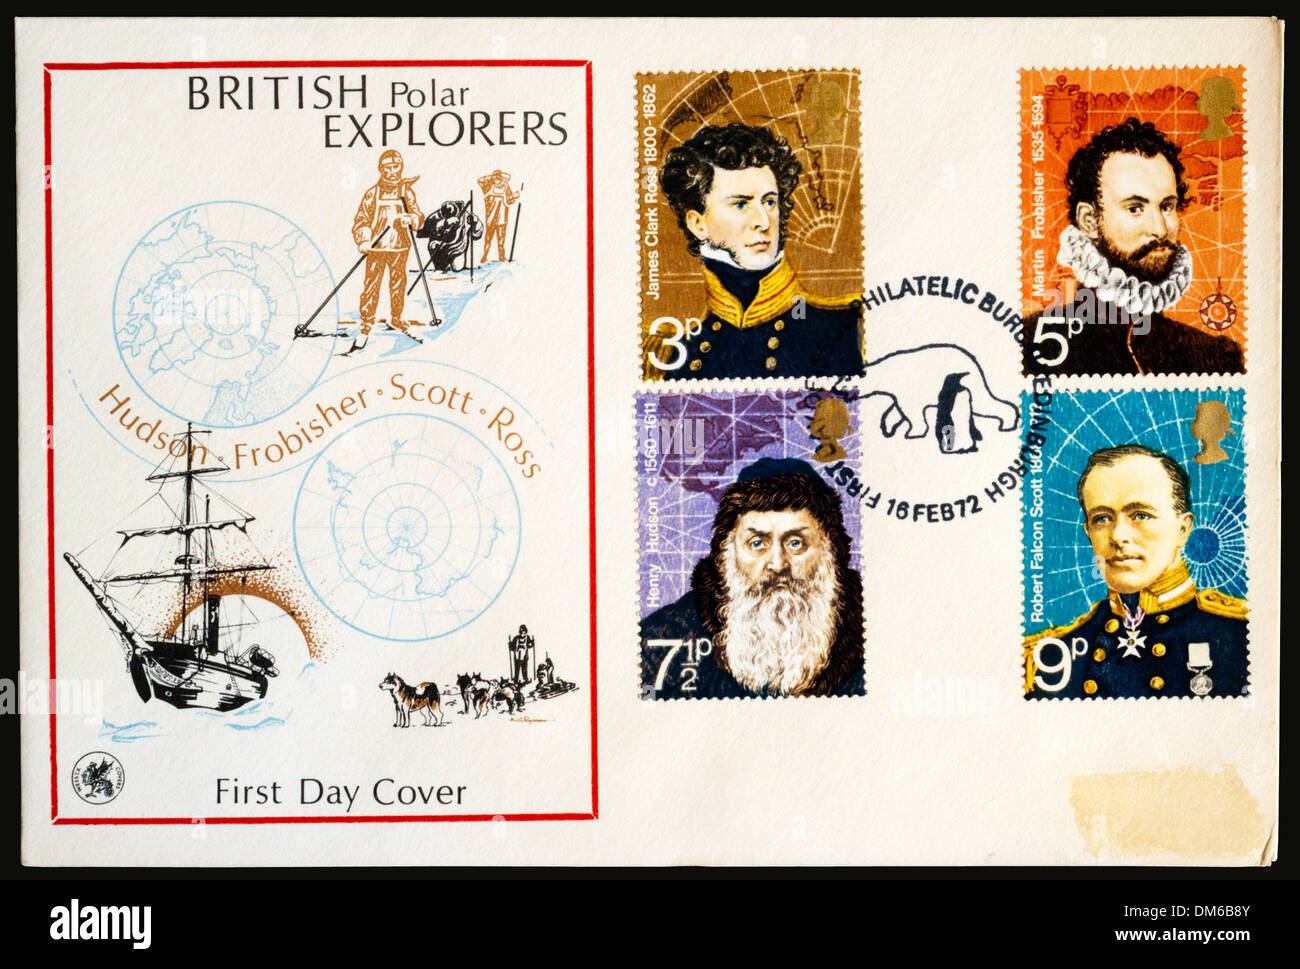 1972 First Day Cover celebrating British Polar Explorers. - Stock Image